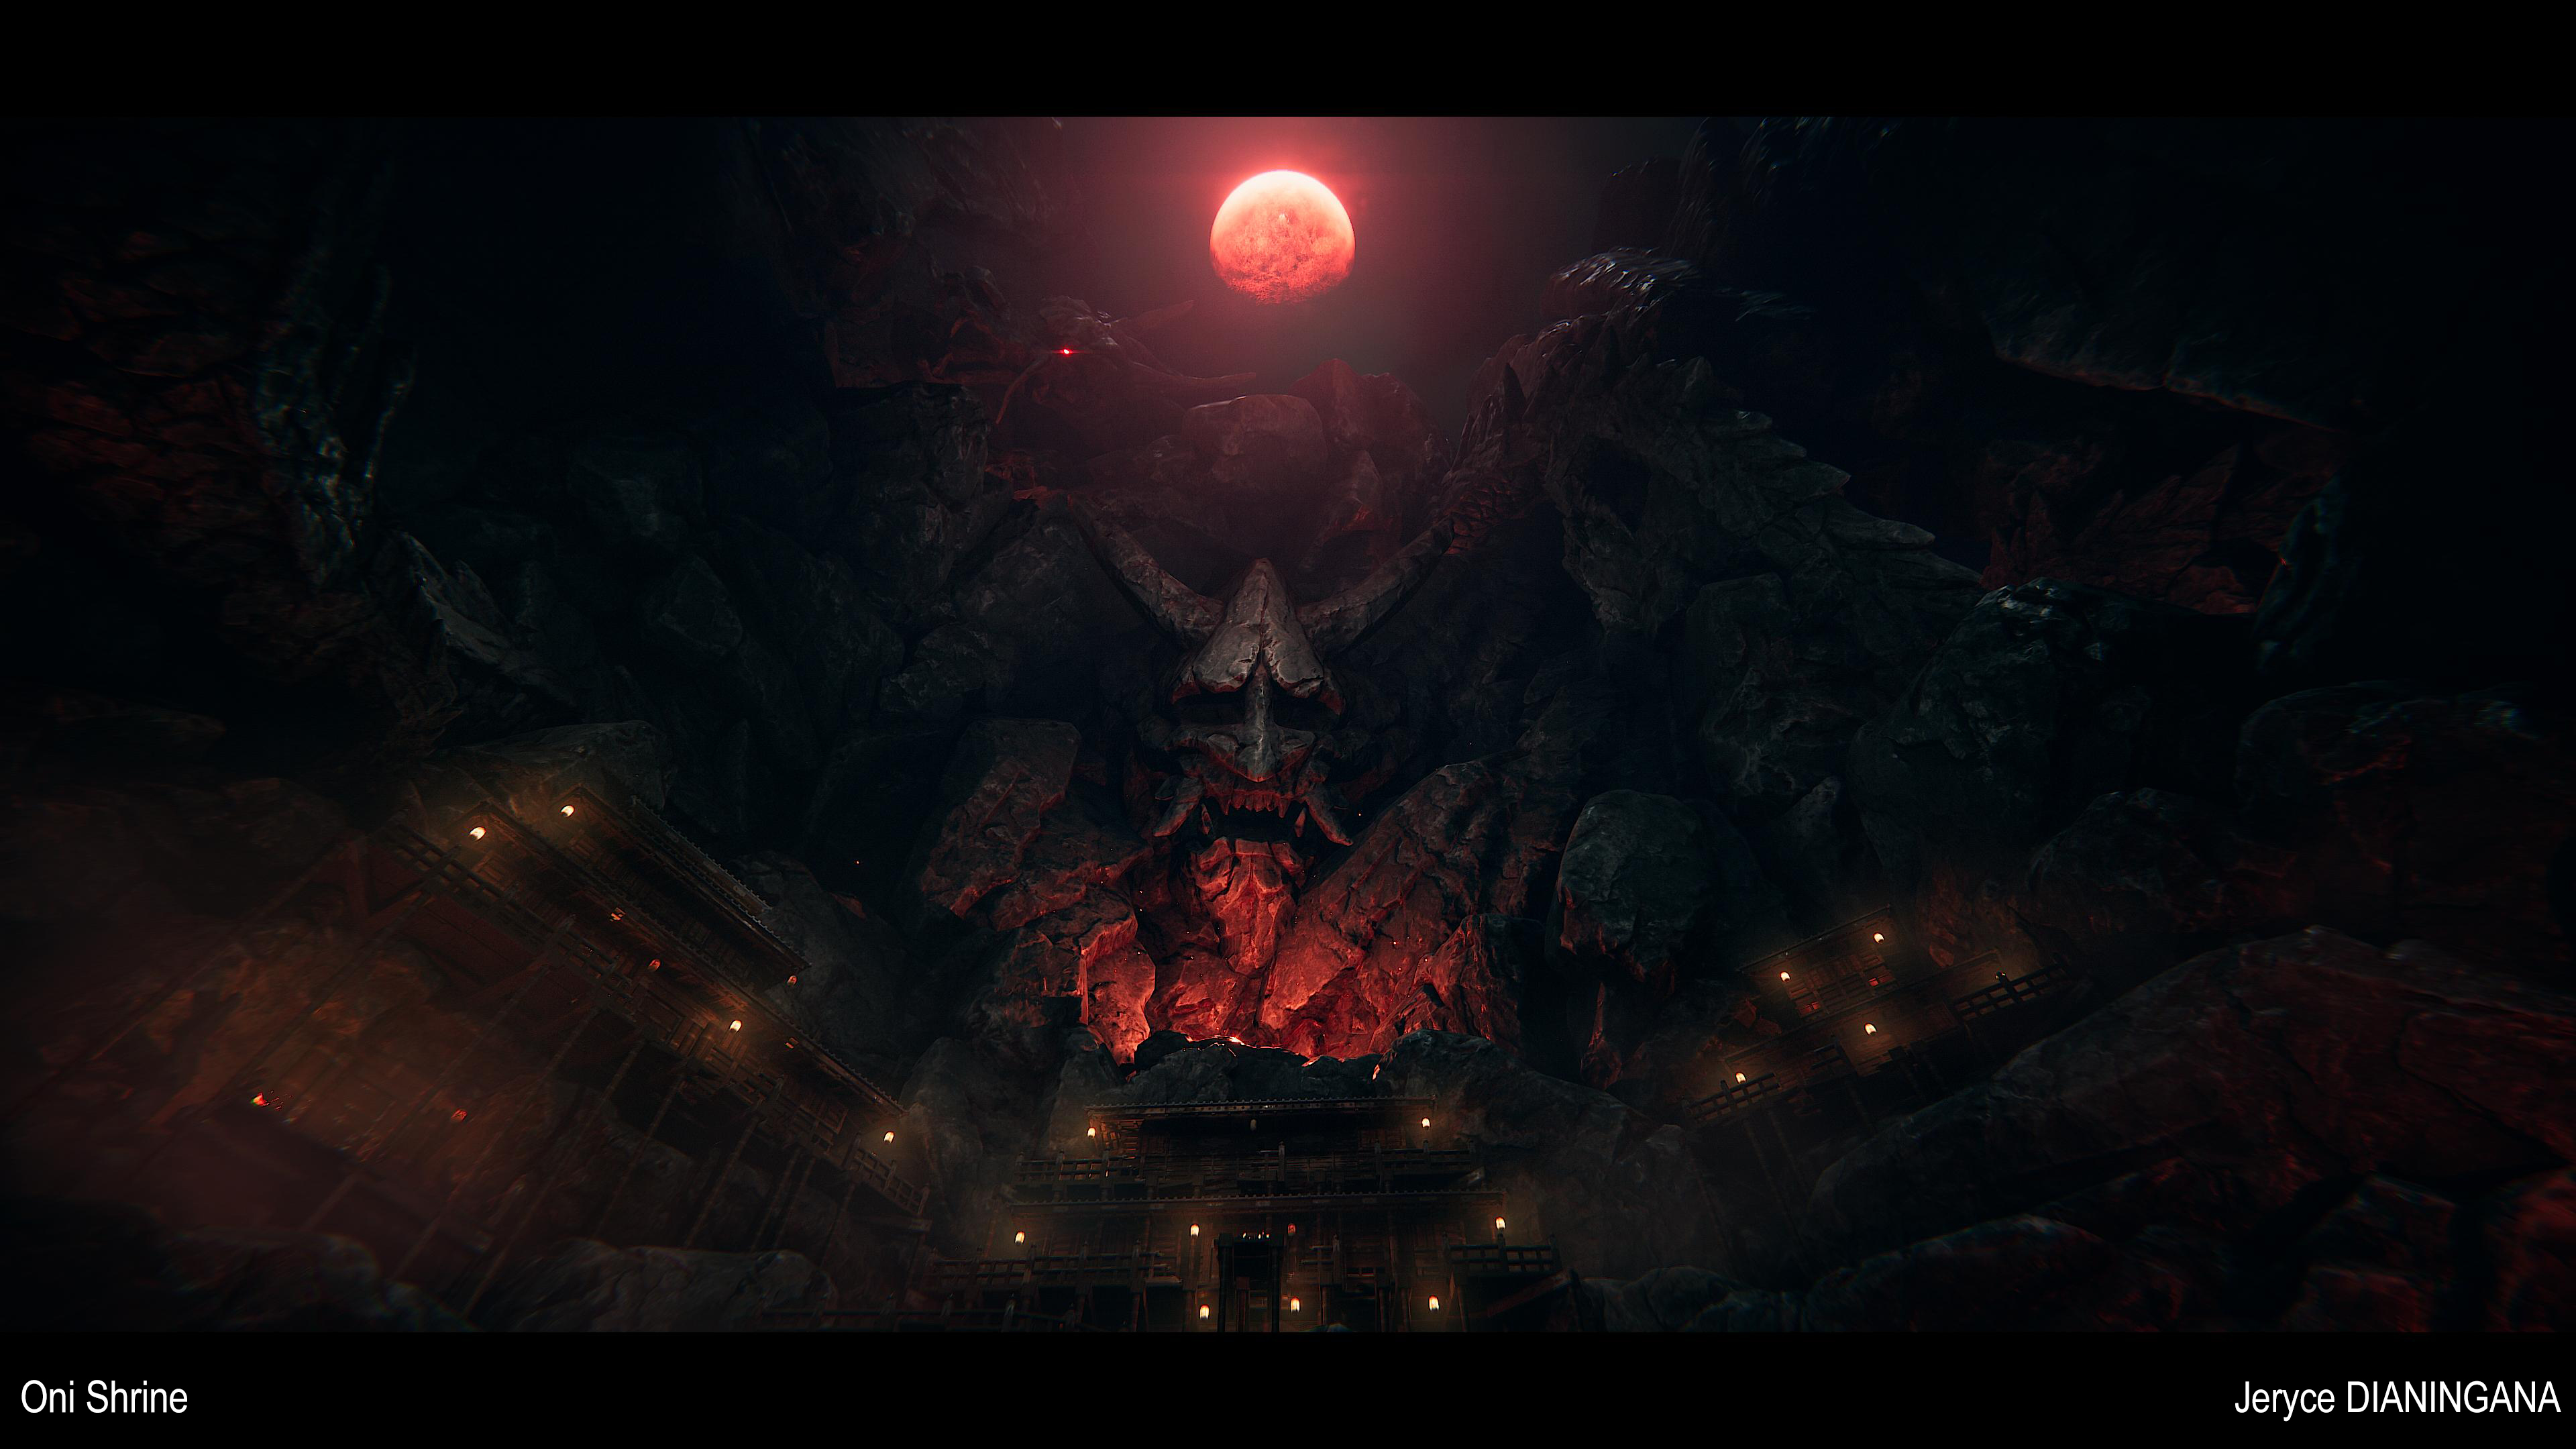 Oni Shrine